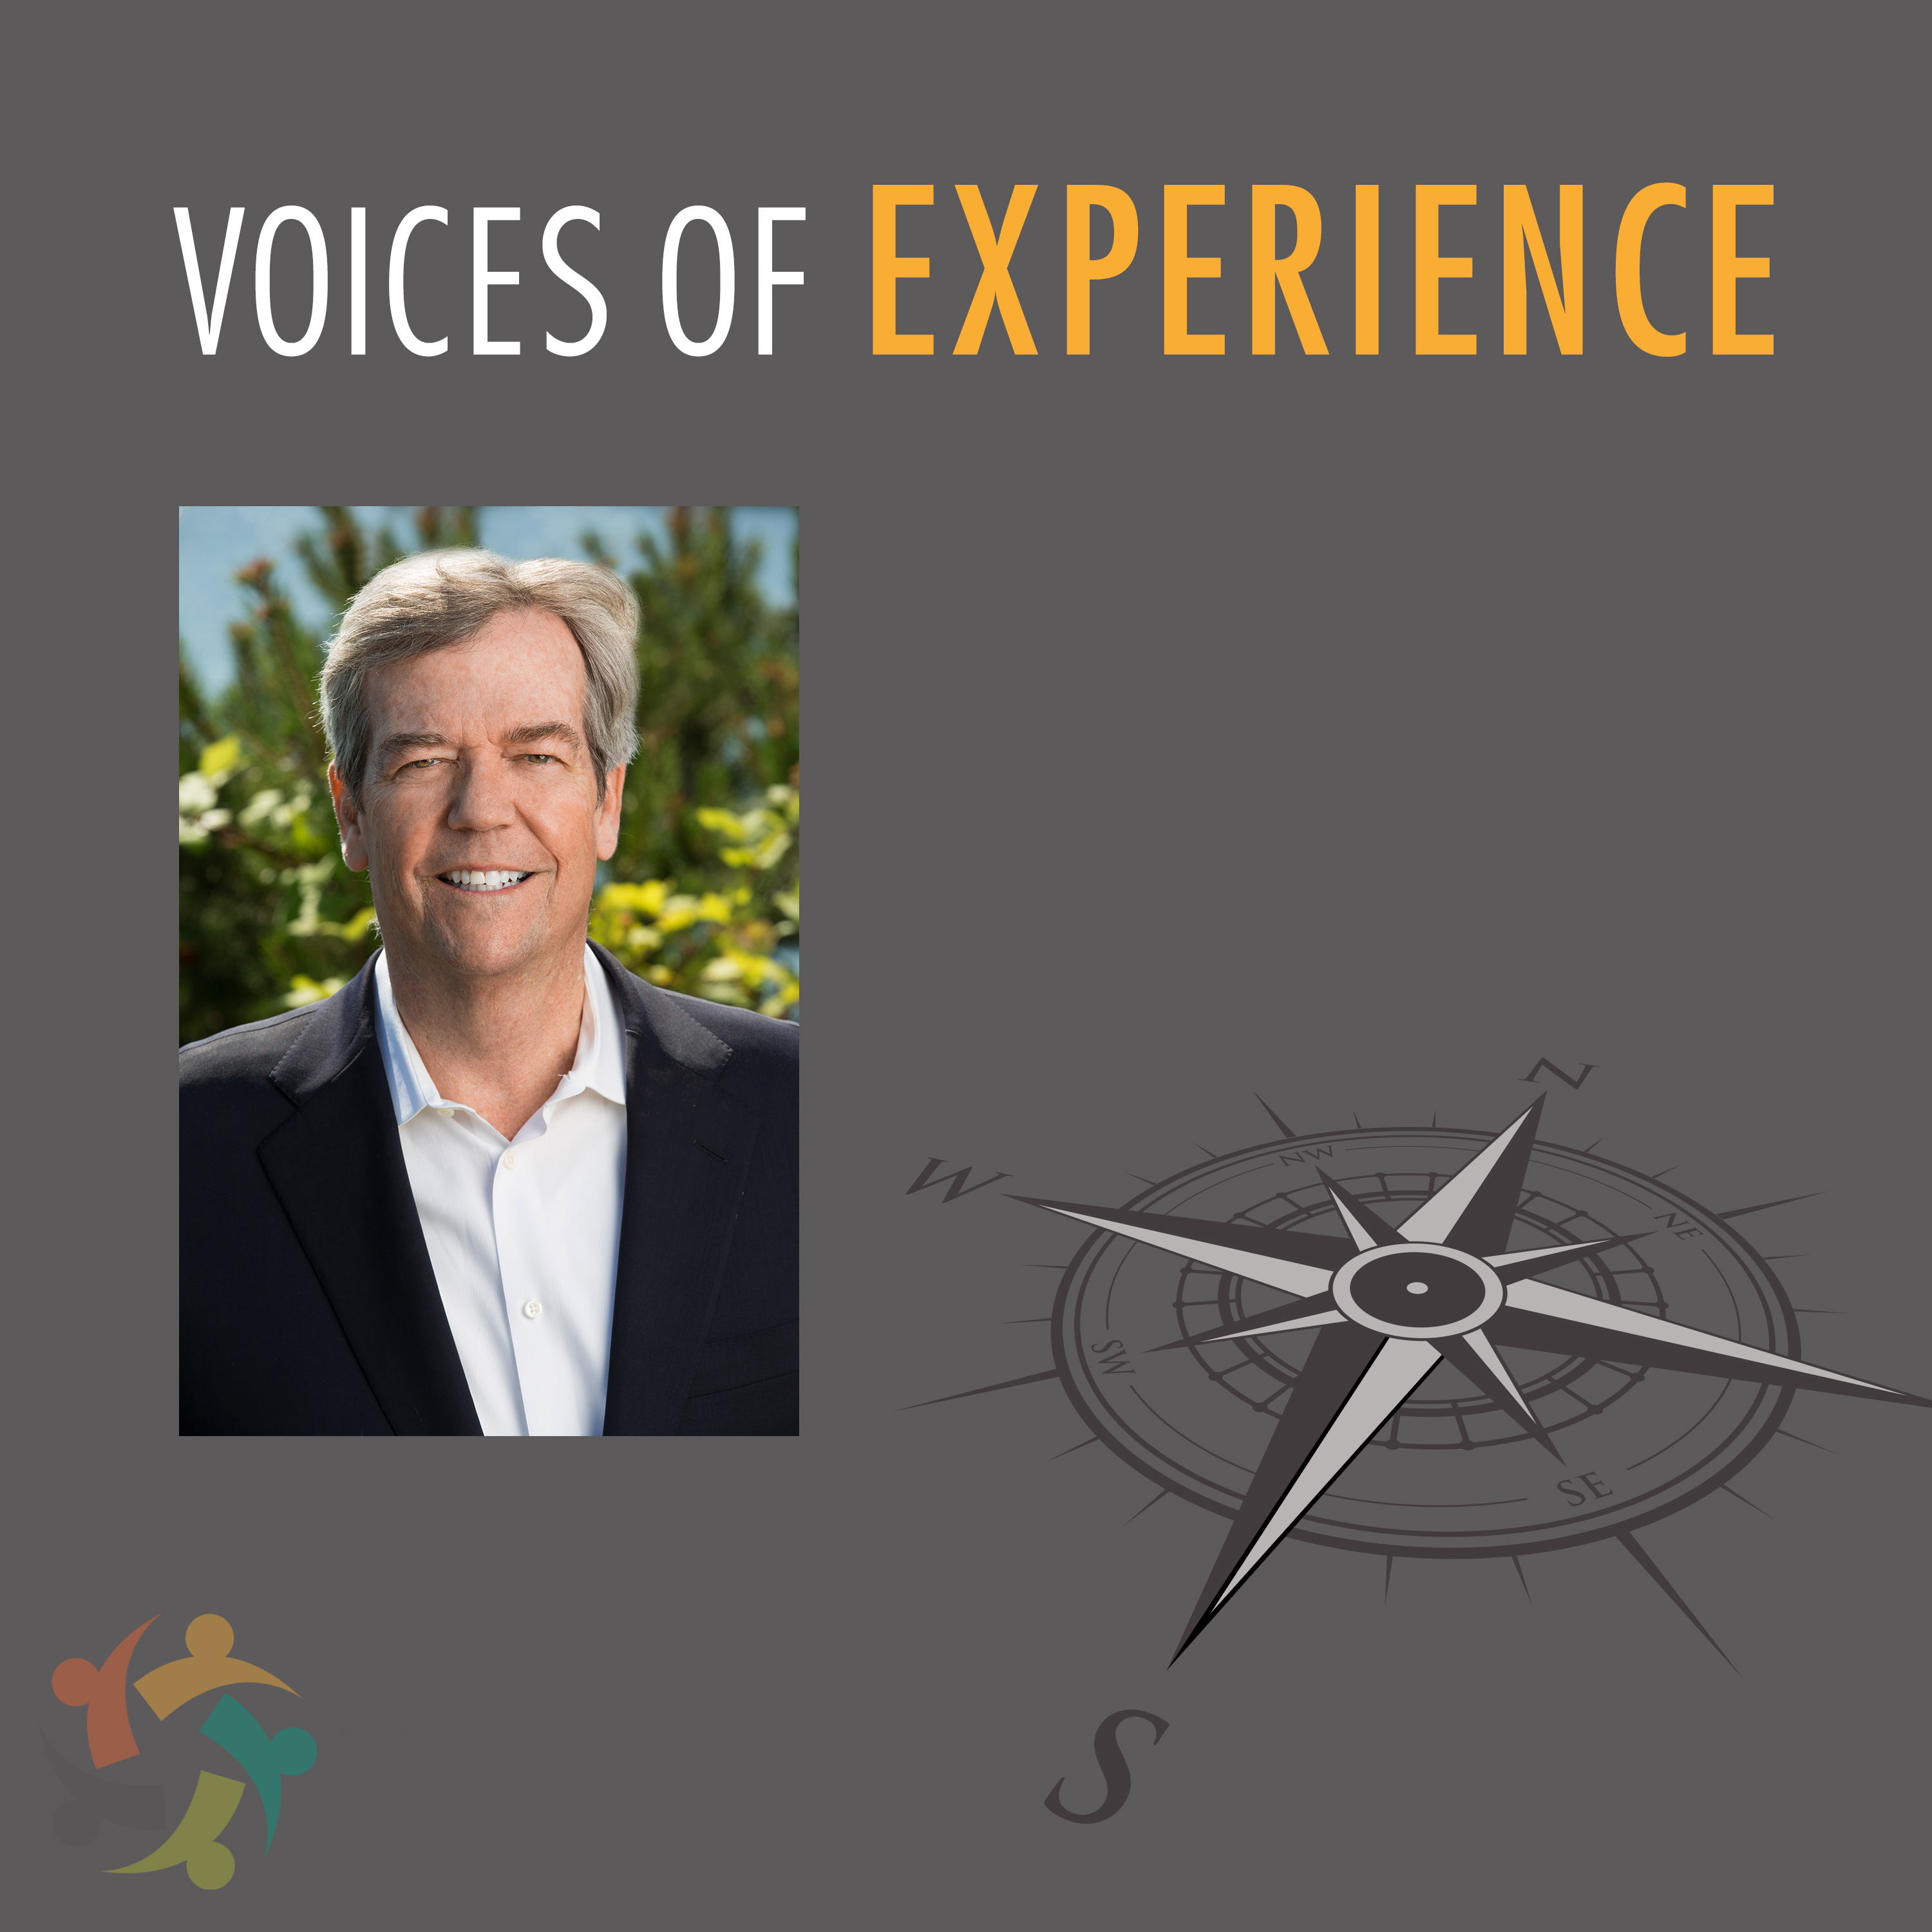 Voices of Experience